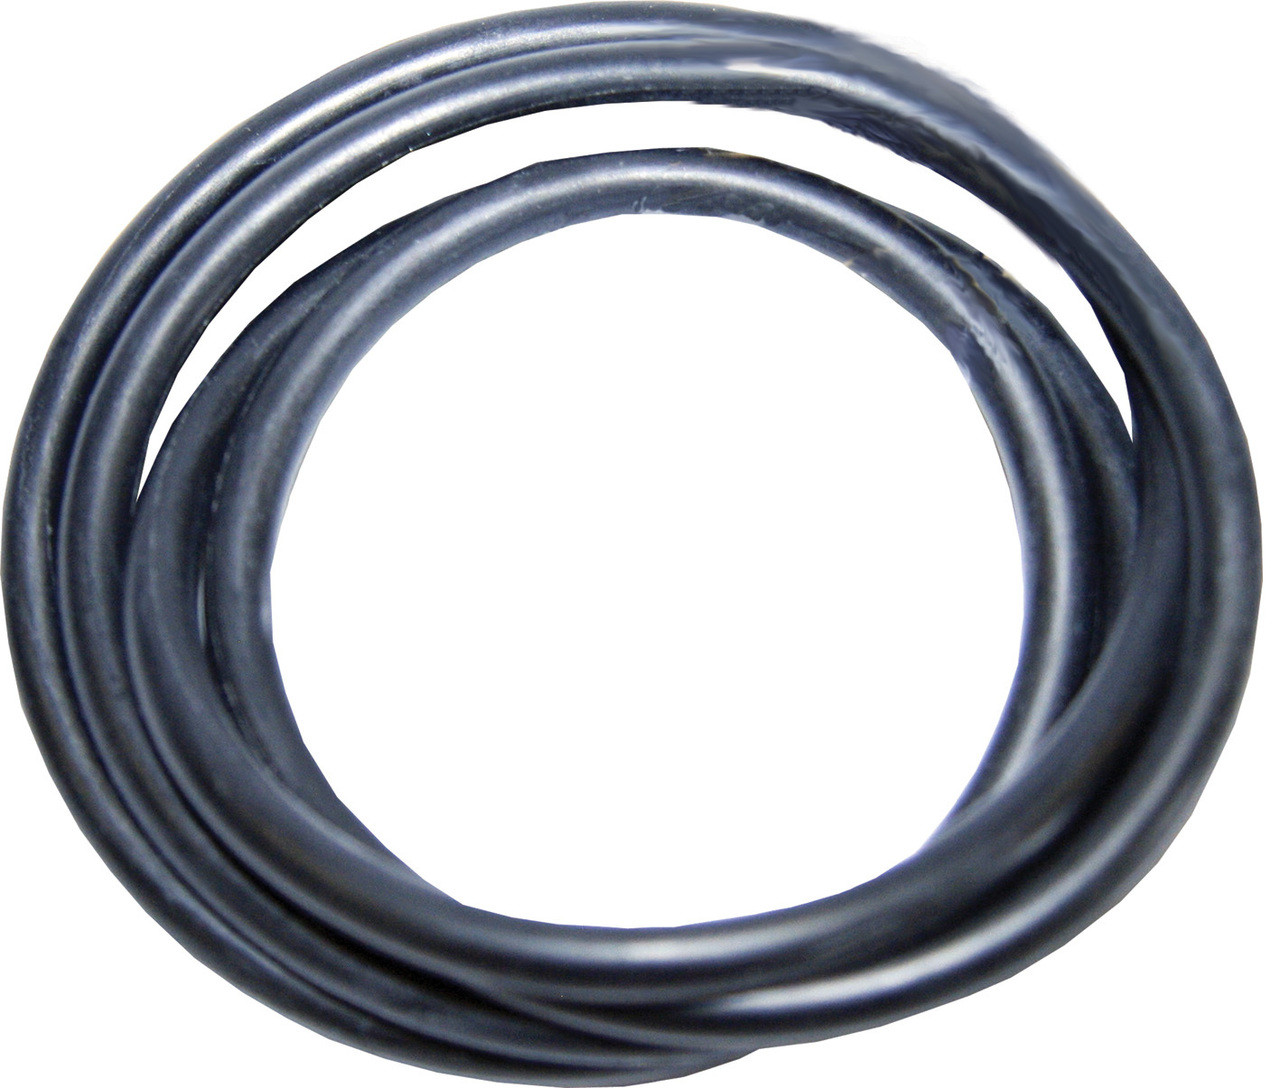 "'O' Ring Only For 8"""""""" Port"